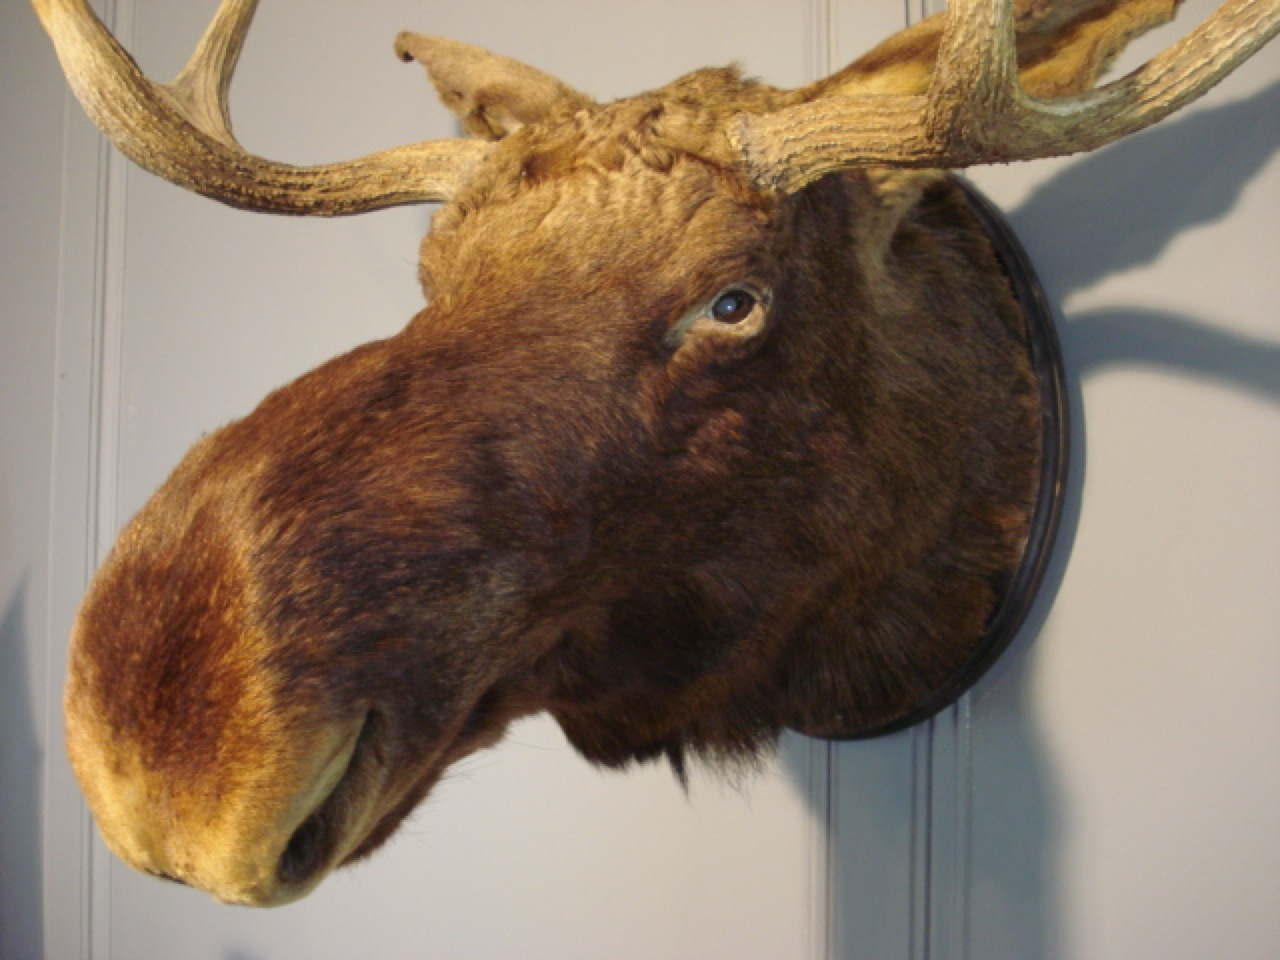 SOLD/TAXIDERMY OF A NORTH AMERICAN MOOSE